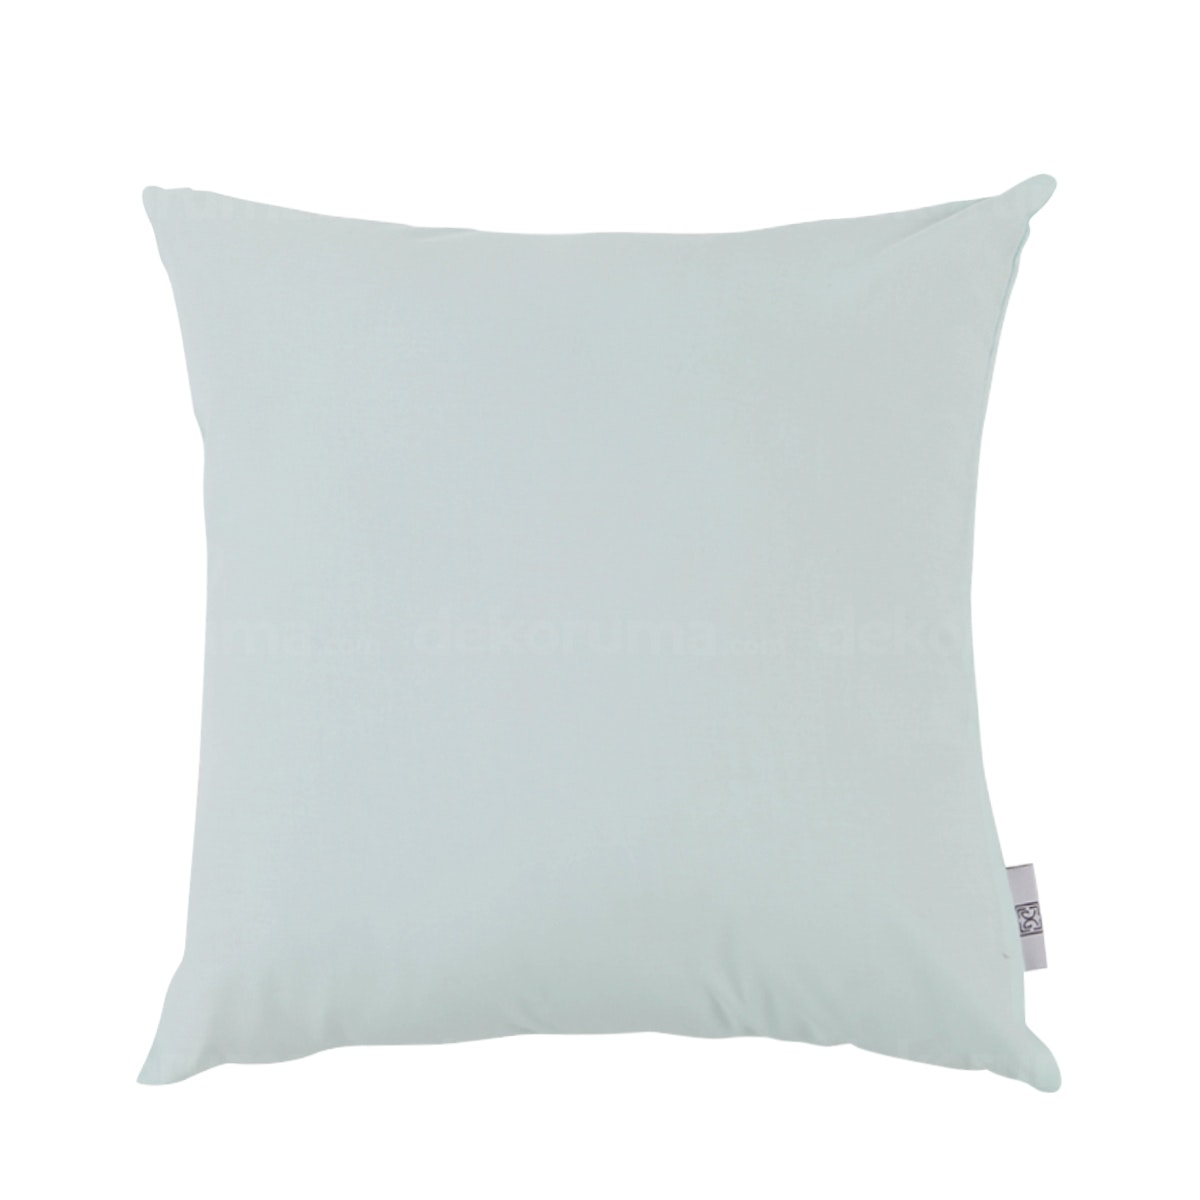 Glerry Home Decor Oceana Cushion 40x40cm (Insert+Cover)